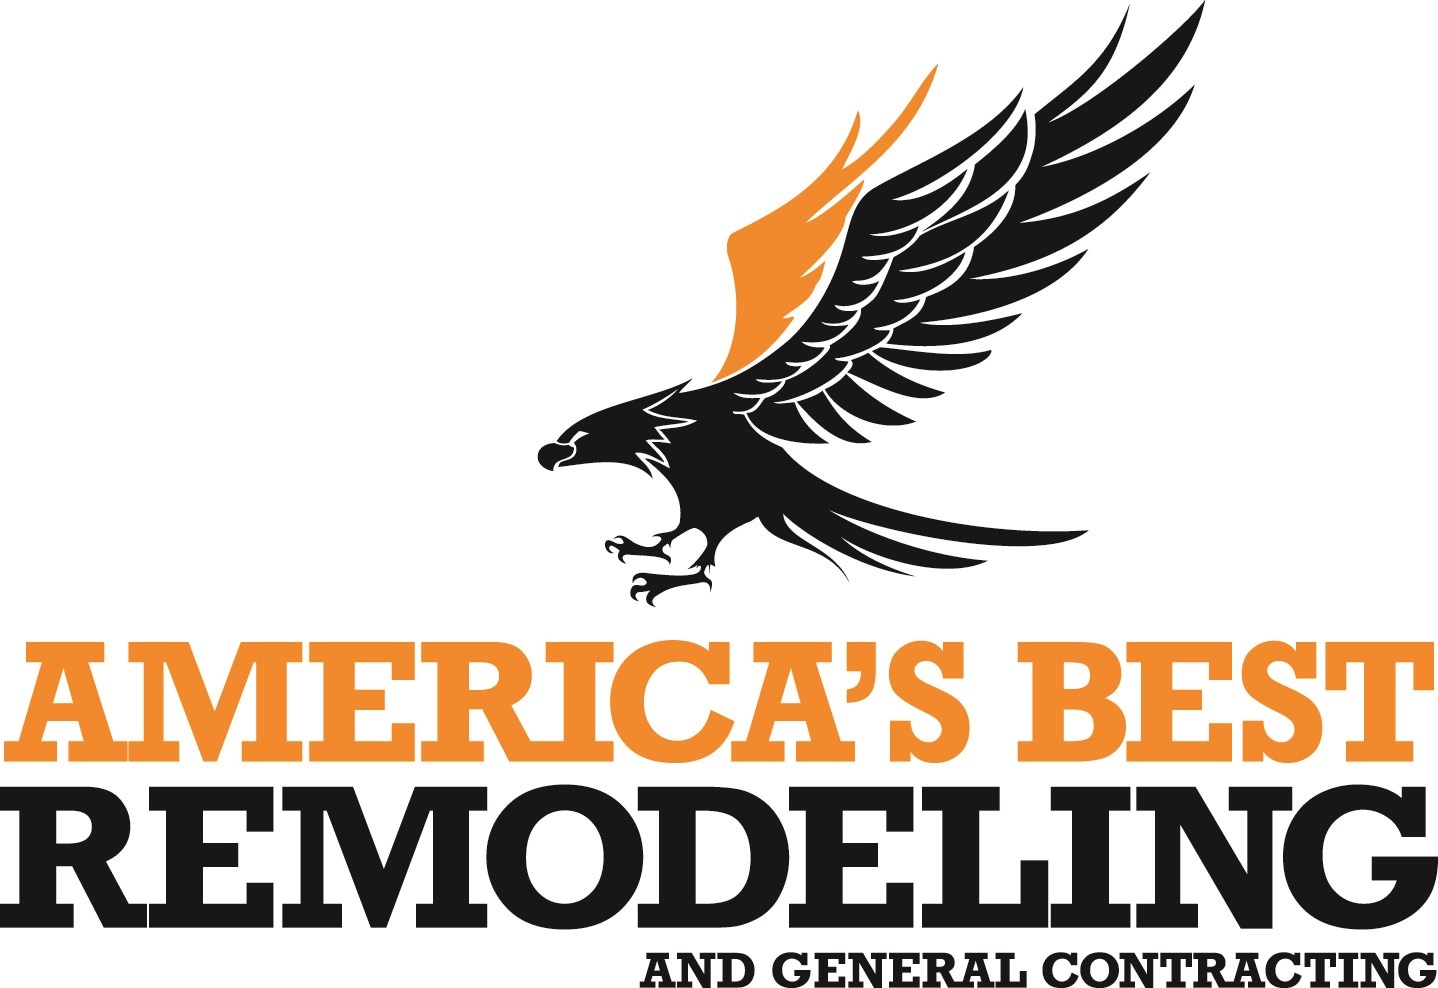 America's Best Remodeling